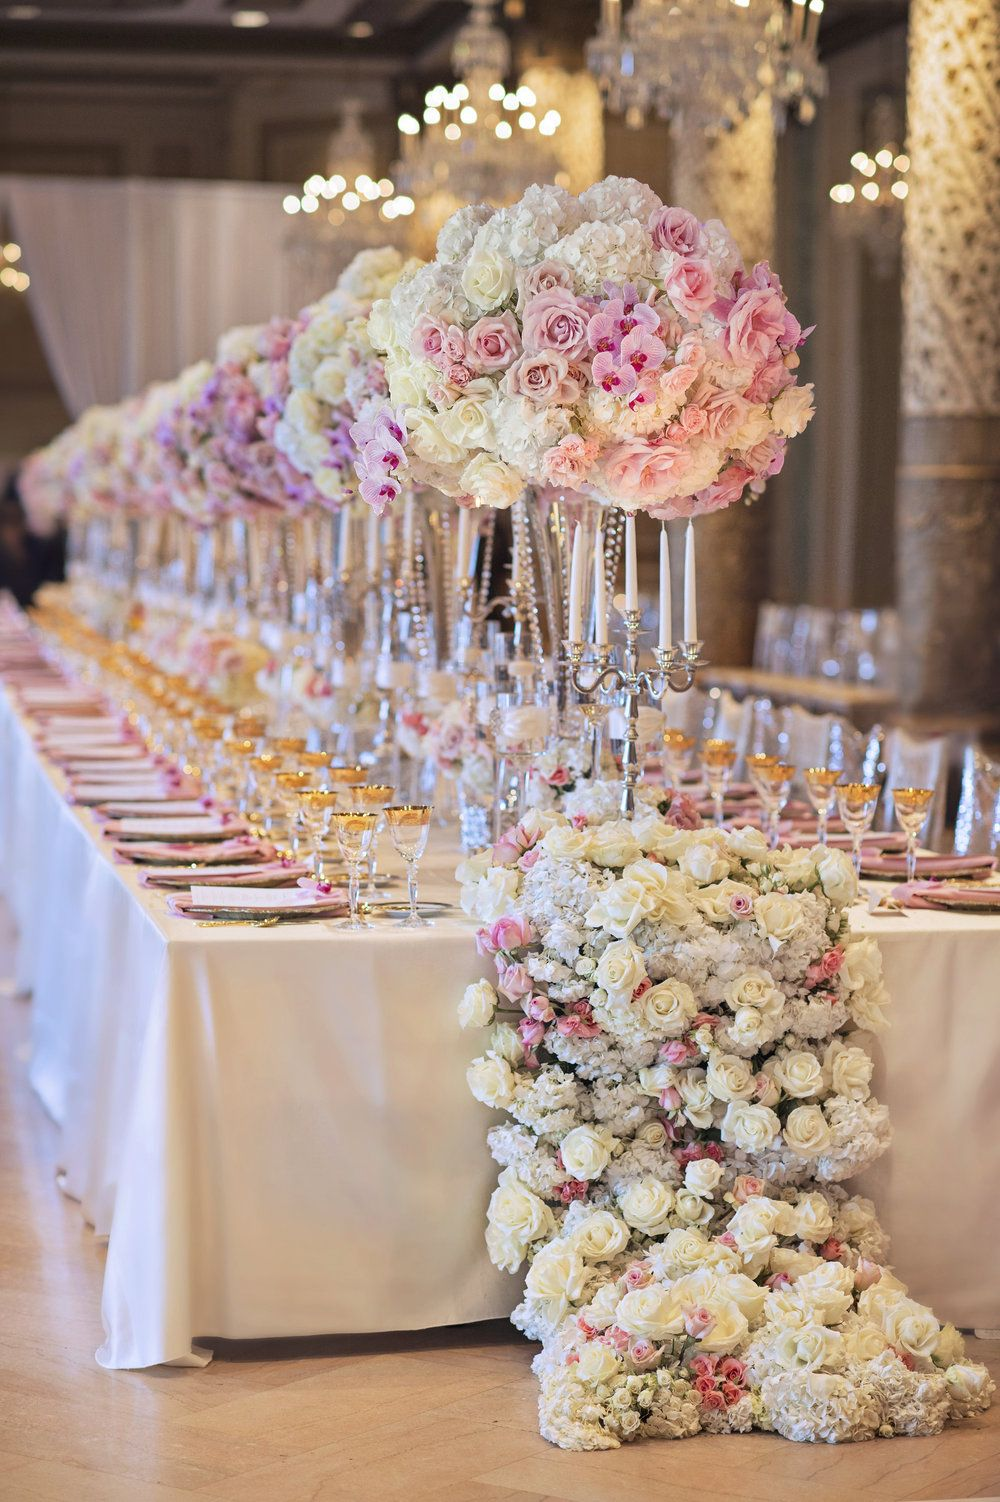 Wedding ideas long wedding tables wedding inspirations for Wedding banquet decorations